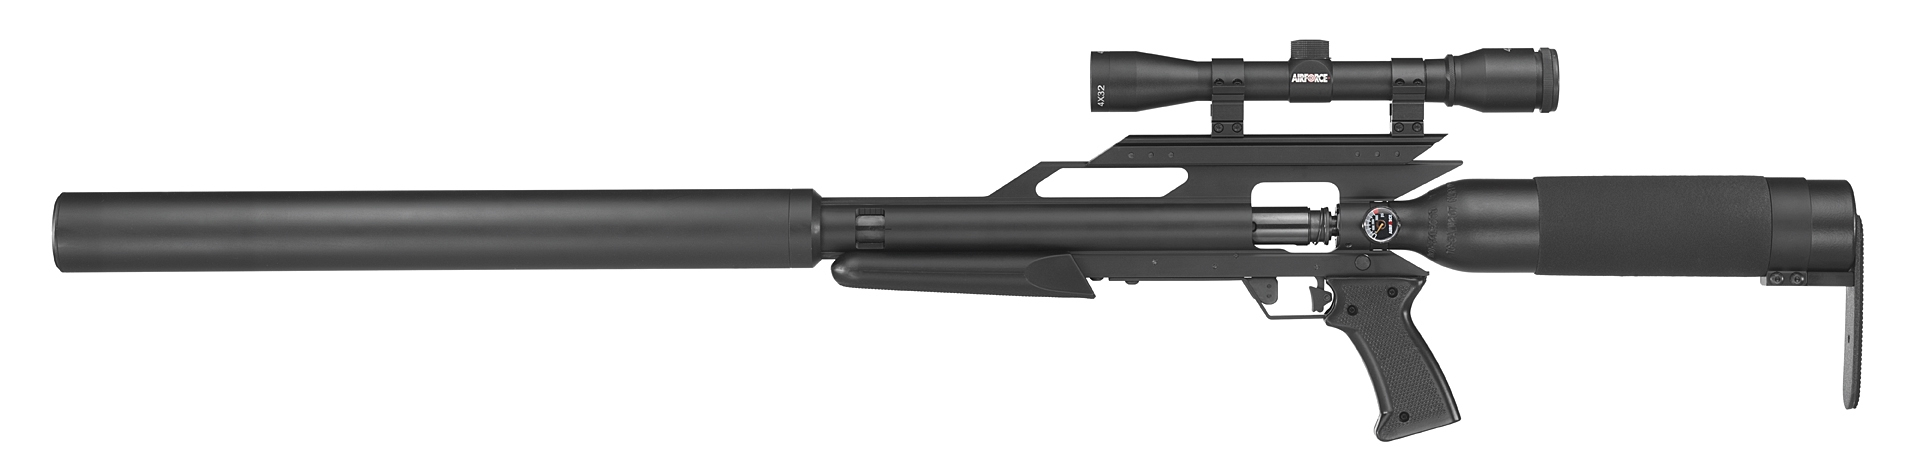 best air rifle for hunting